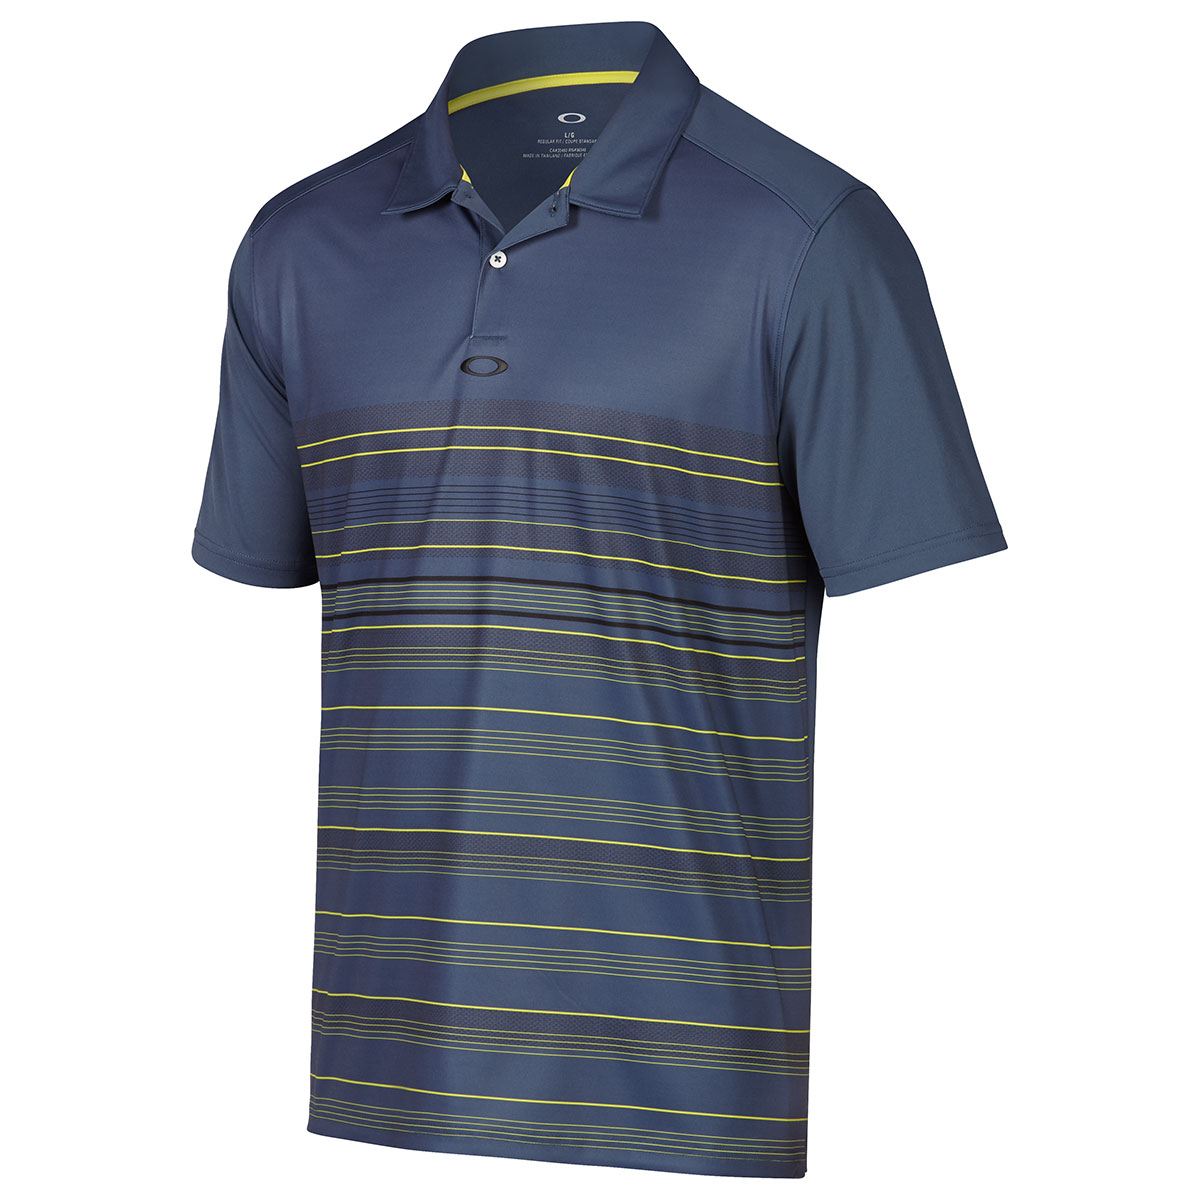 Oakley golf 2017 mens high crest golf polo shirt top for Polo golf shirts for men